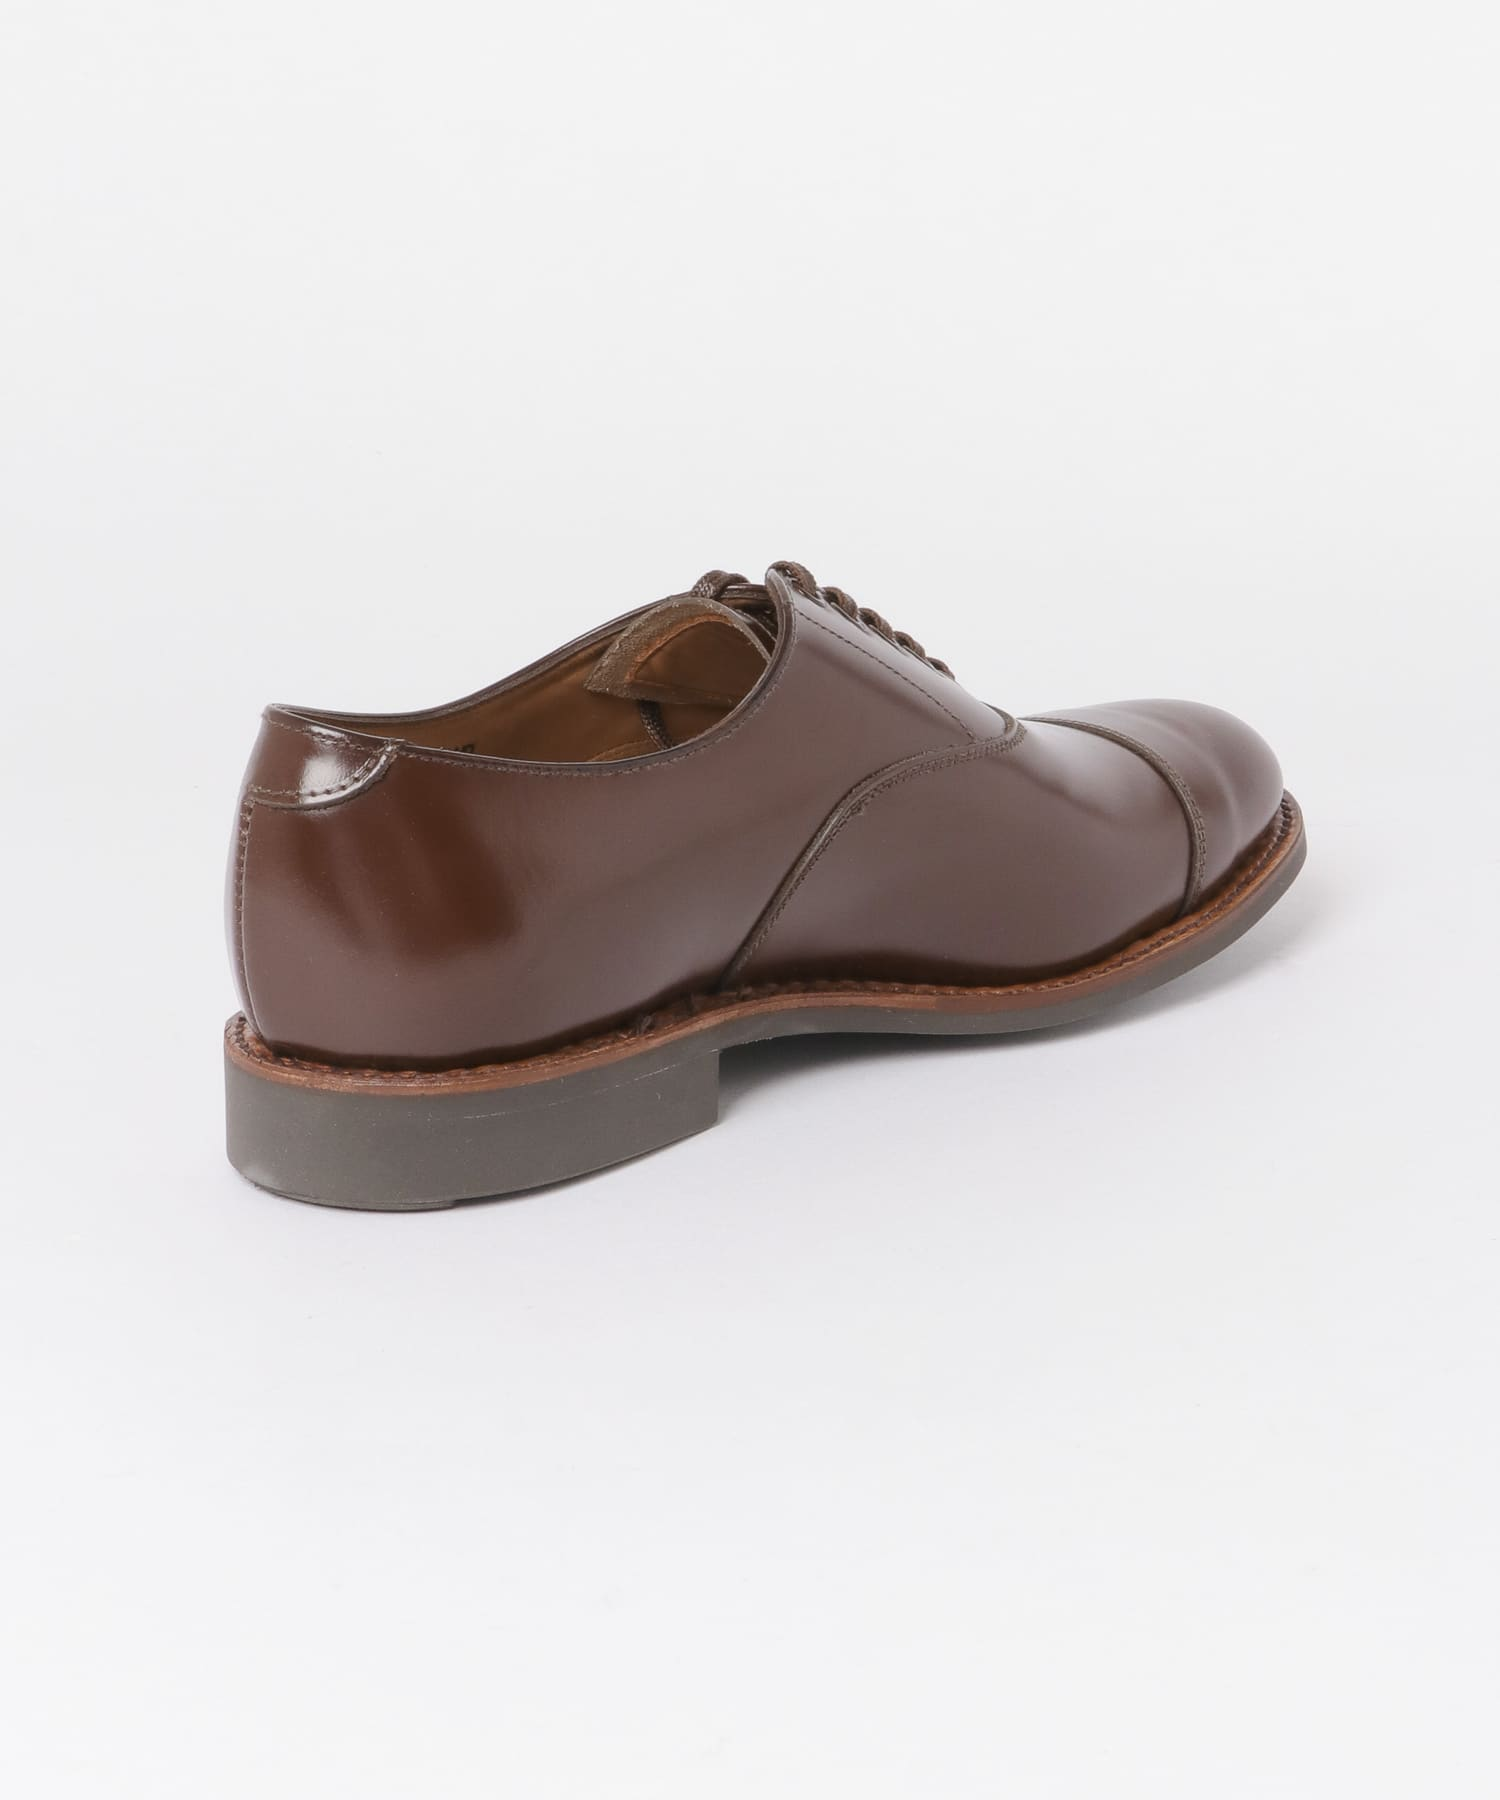 Freemans Sporting Club Military Cap Toe Oxford 2131-UF96: Rich Tan